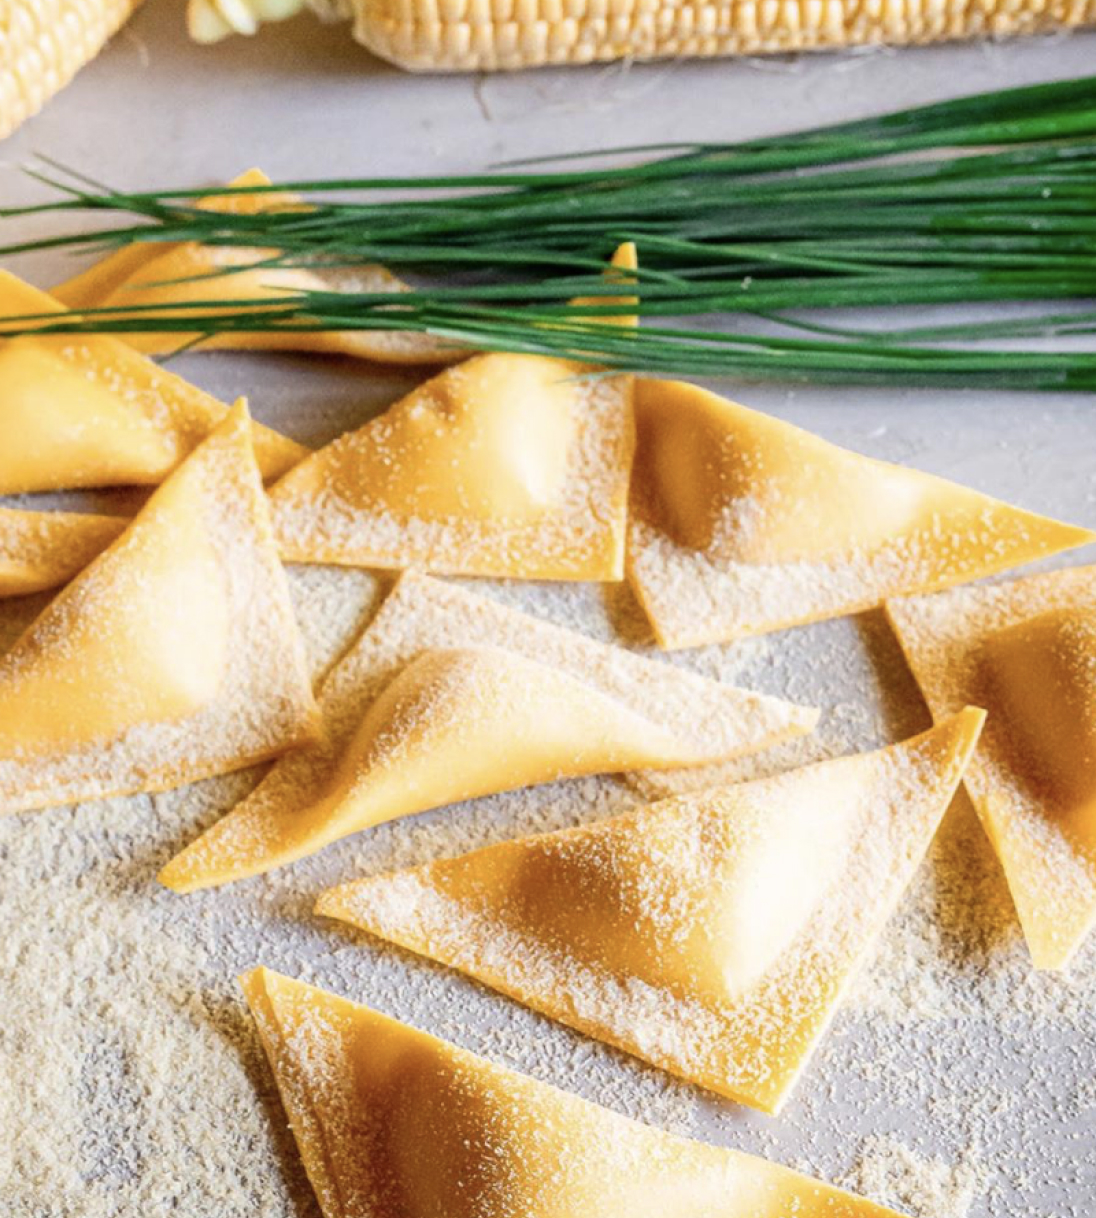 Corn triangoli pasta kit for cooking at home